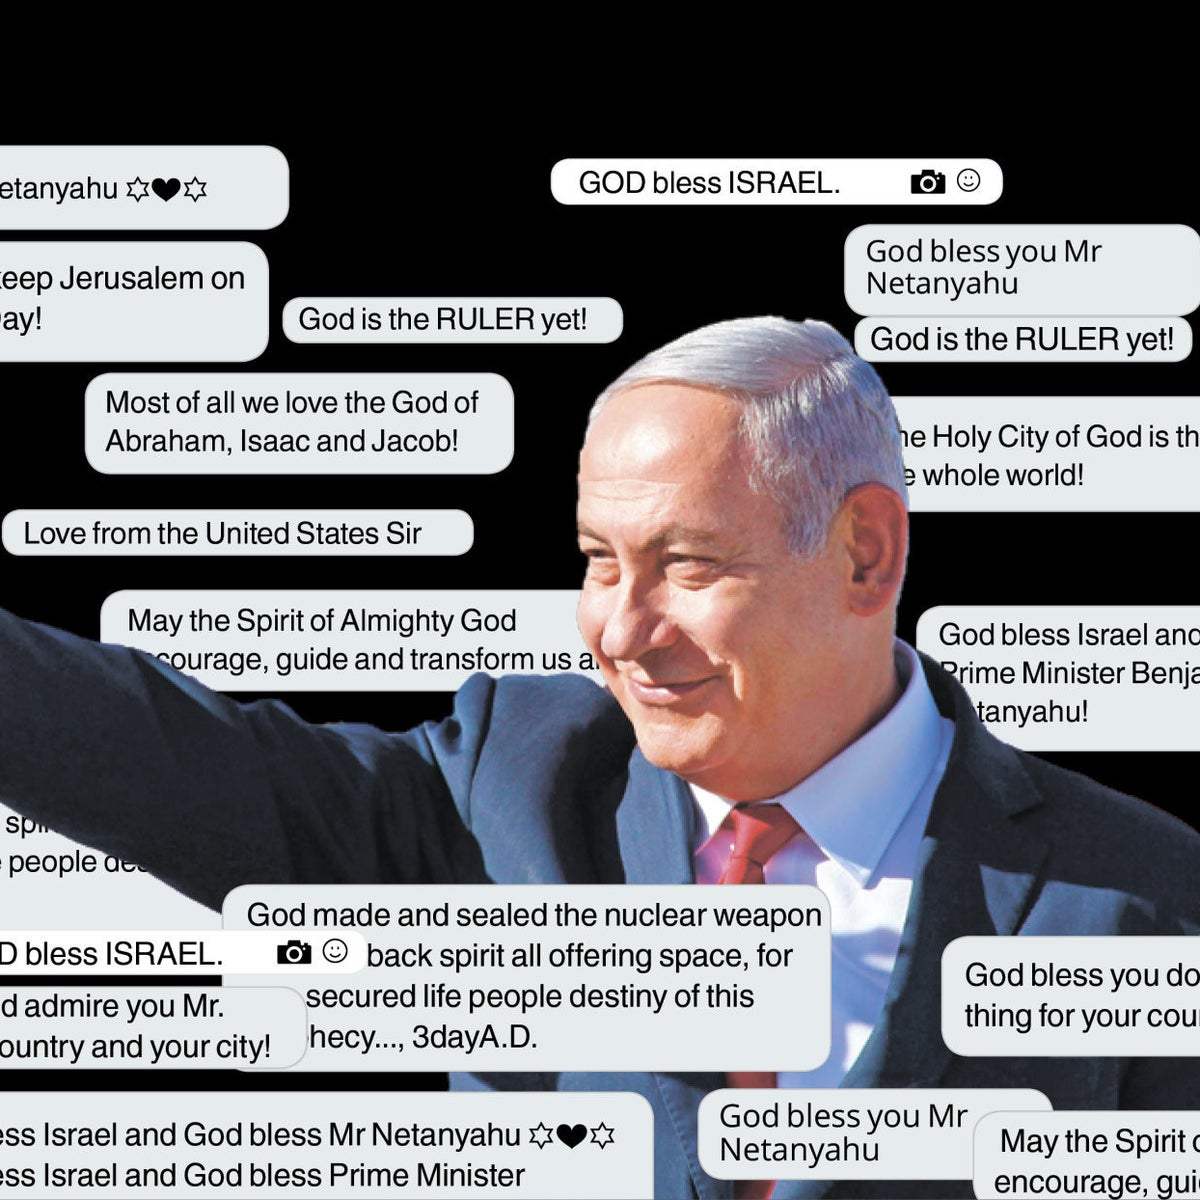 Netanyahu and comments